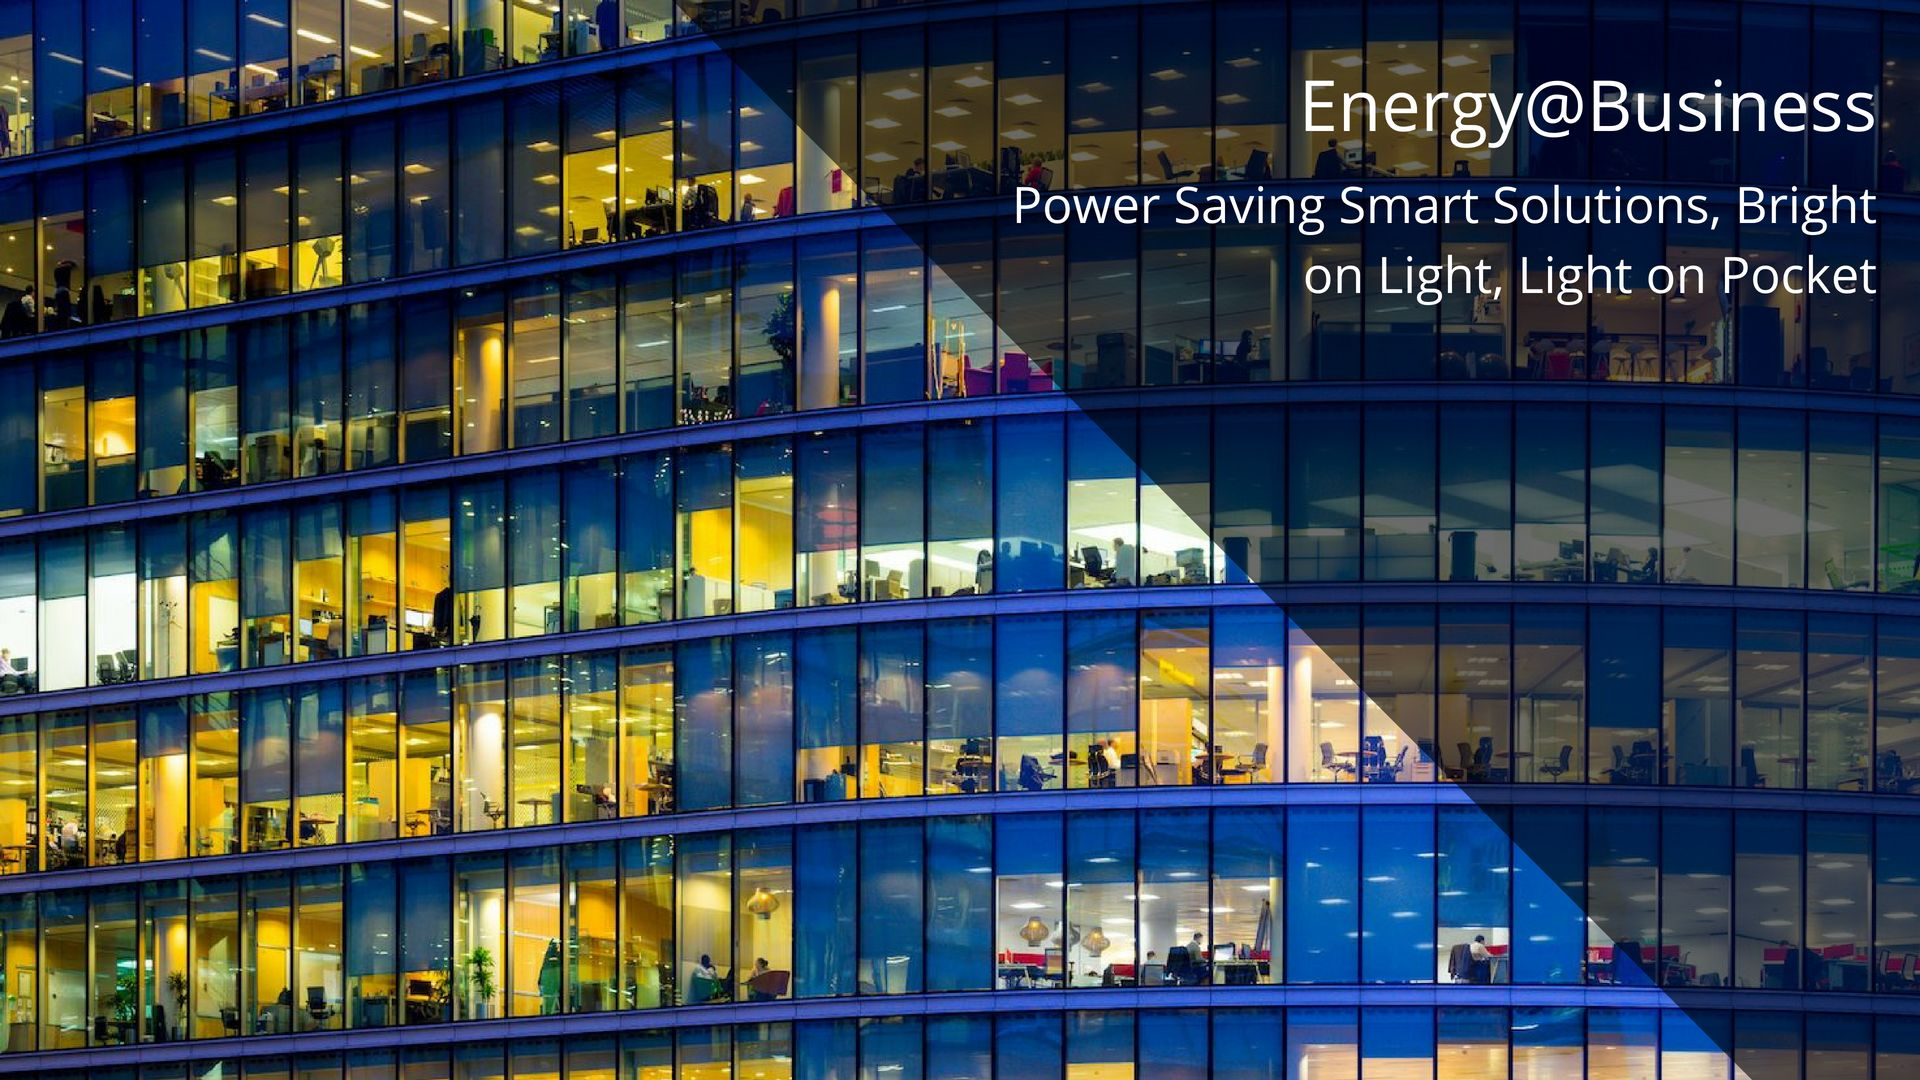 Power solutions by swingtel